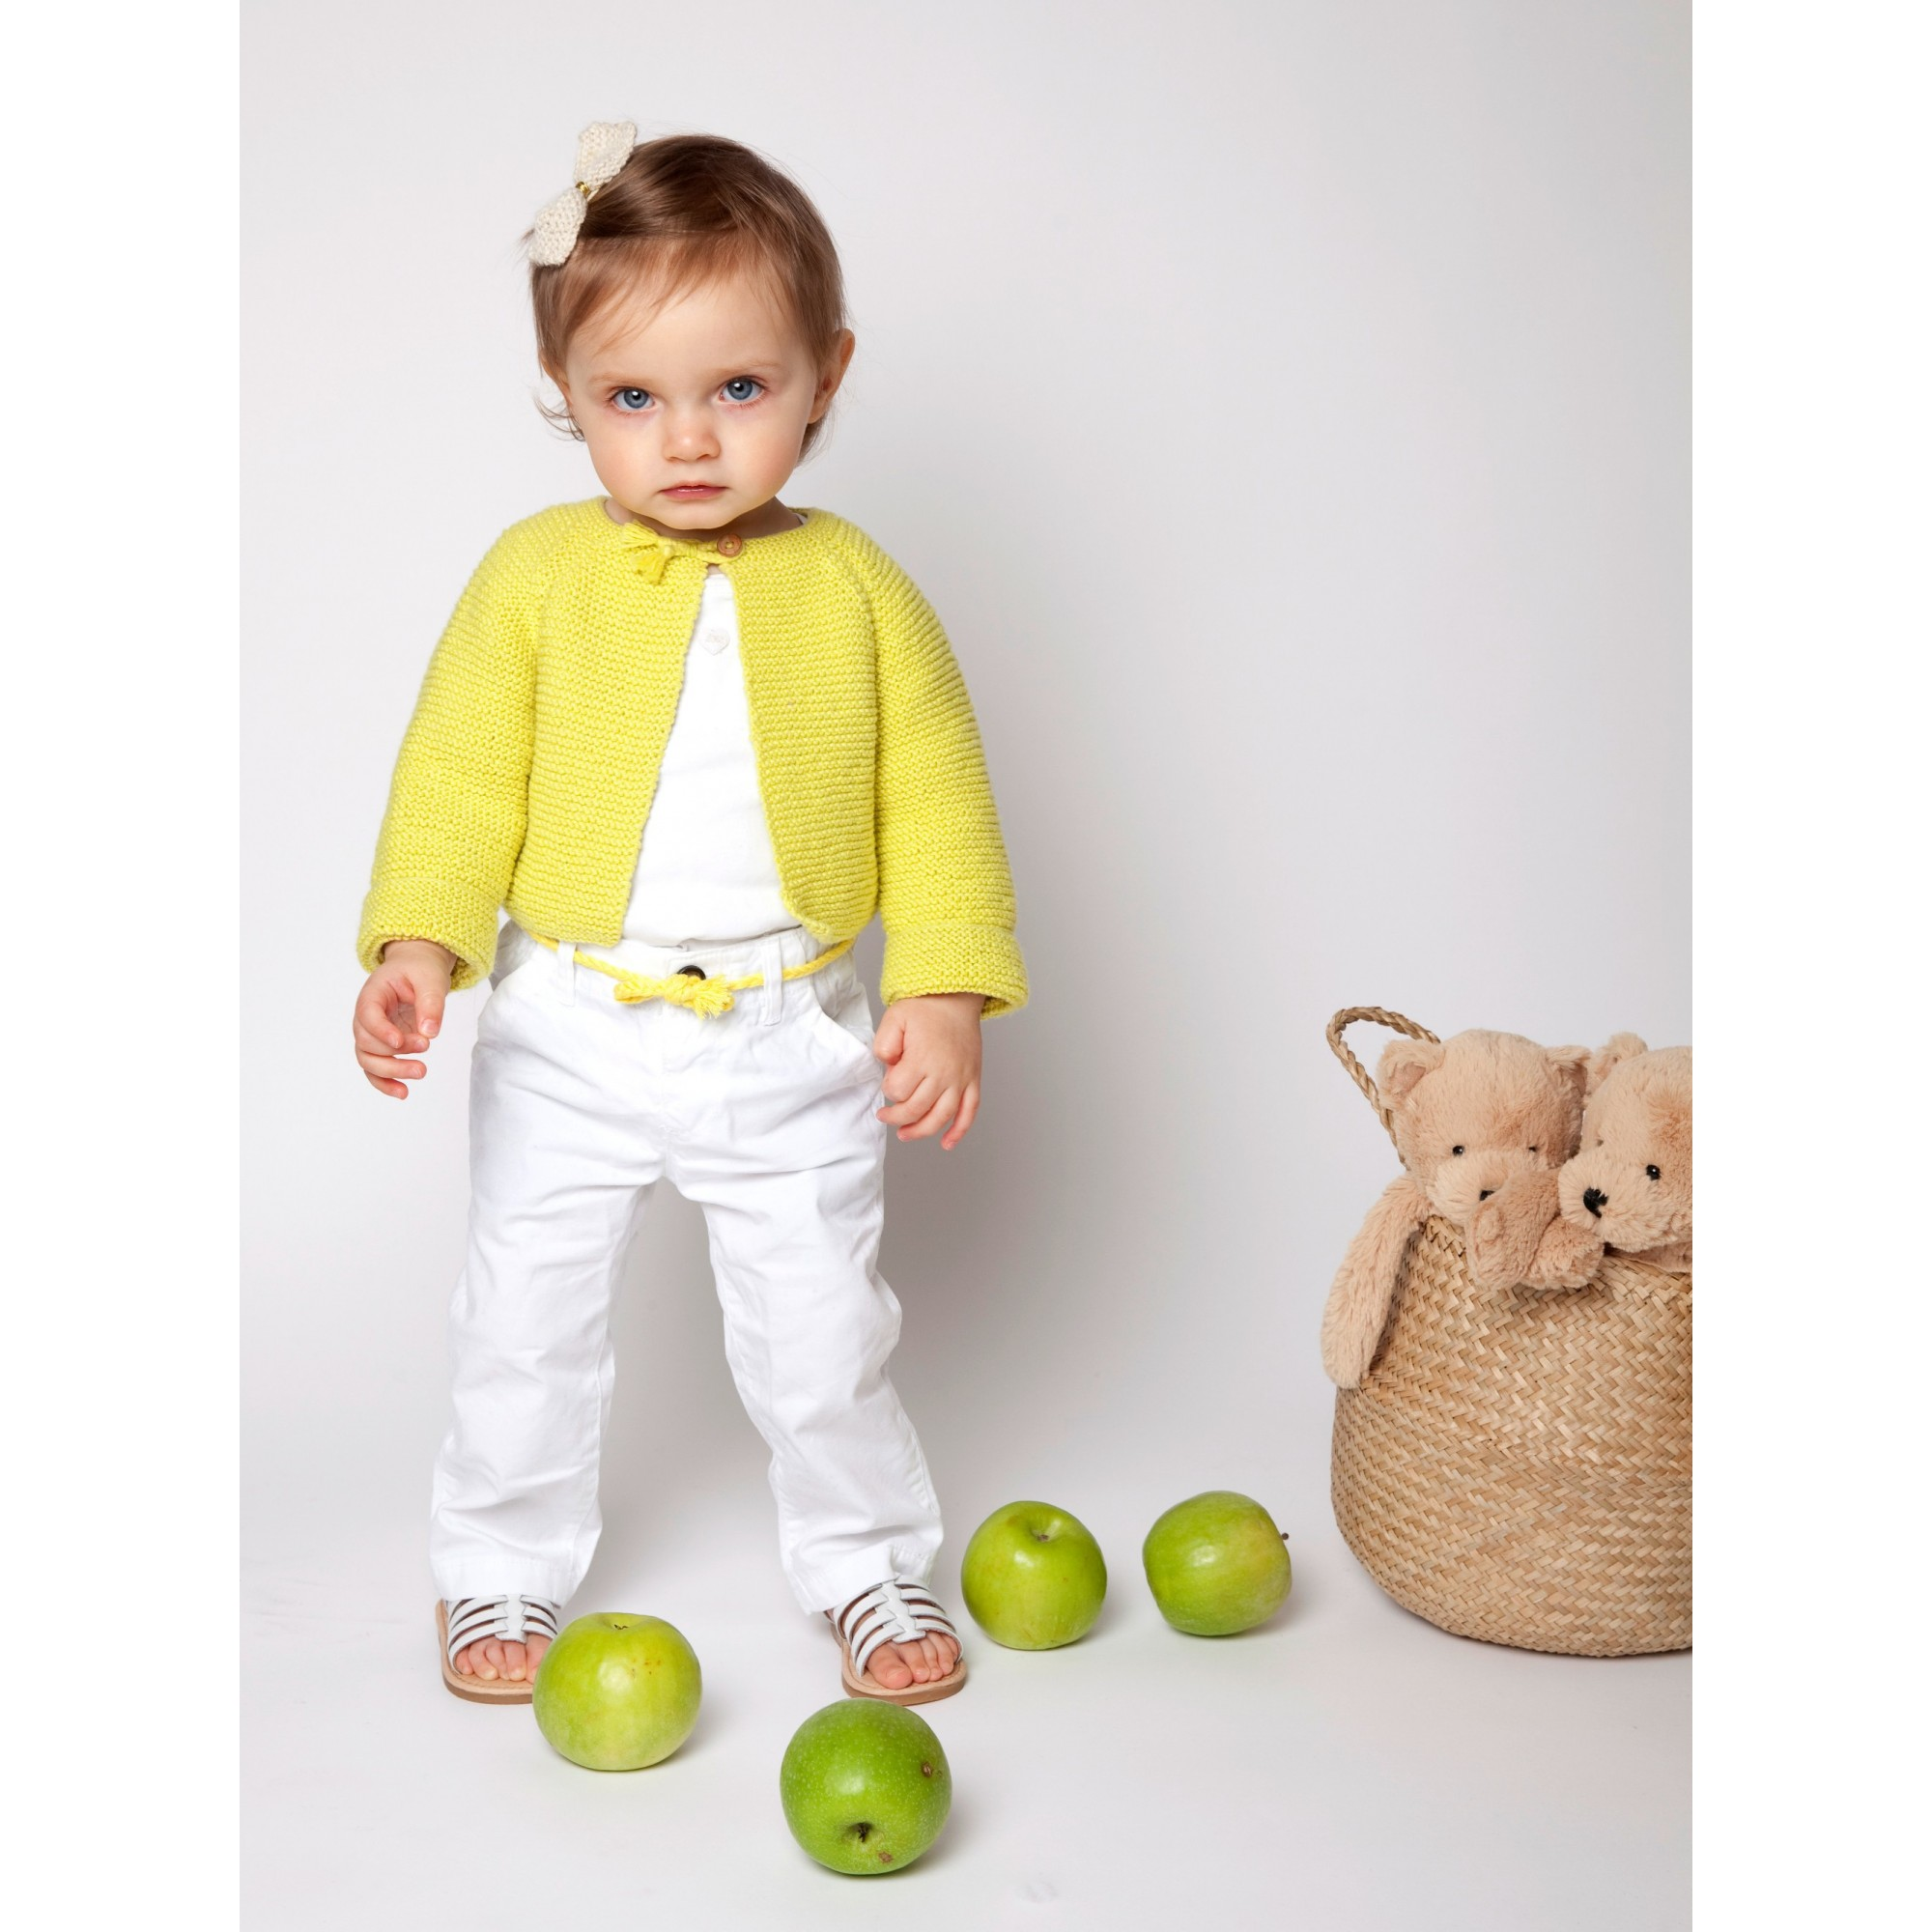 96f416294 Blue cardigan for baby   toddlers. Knitted from cotton   cashmere.